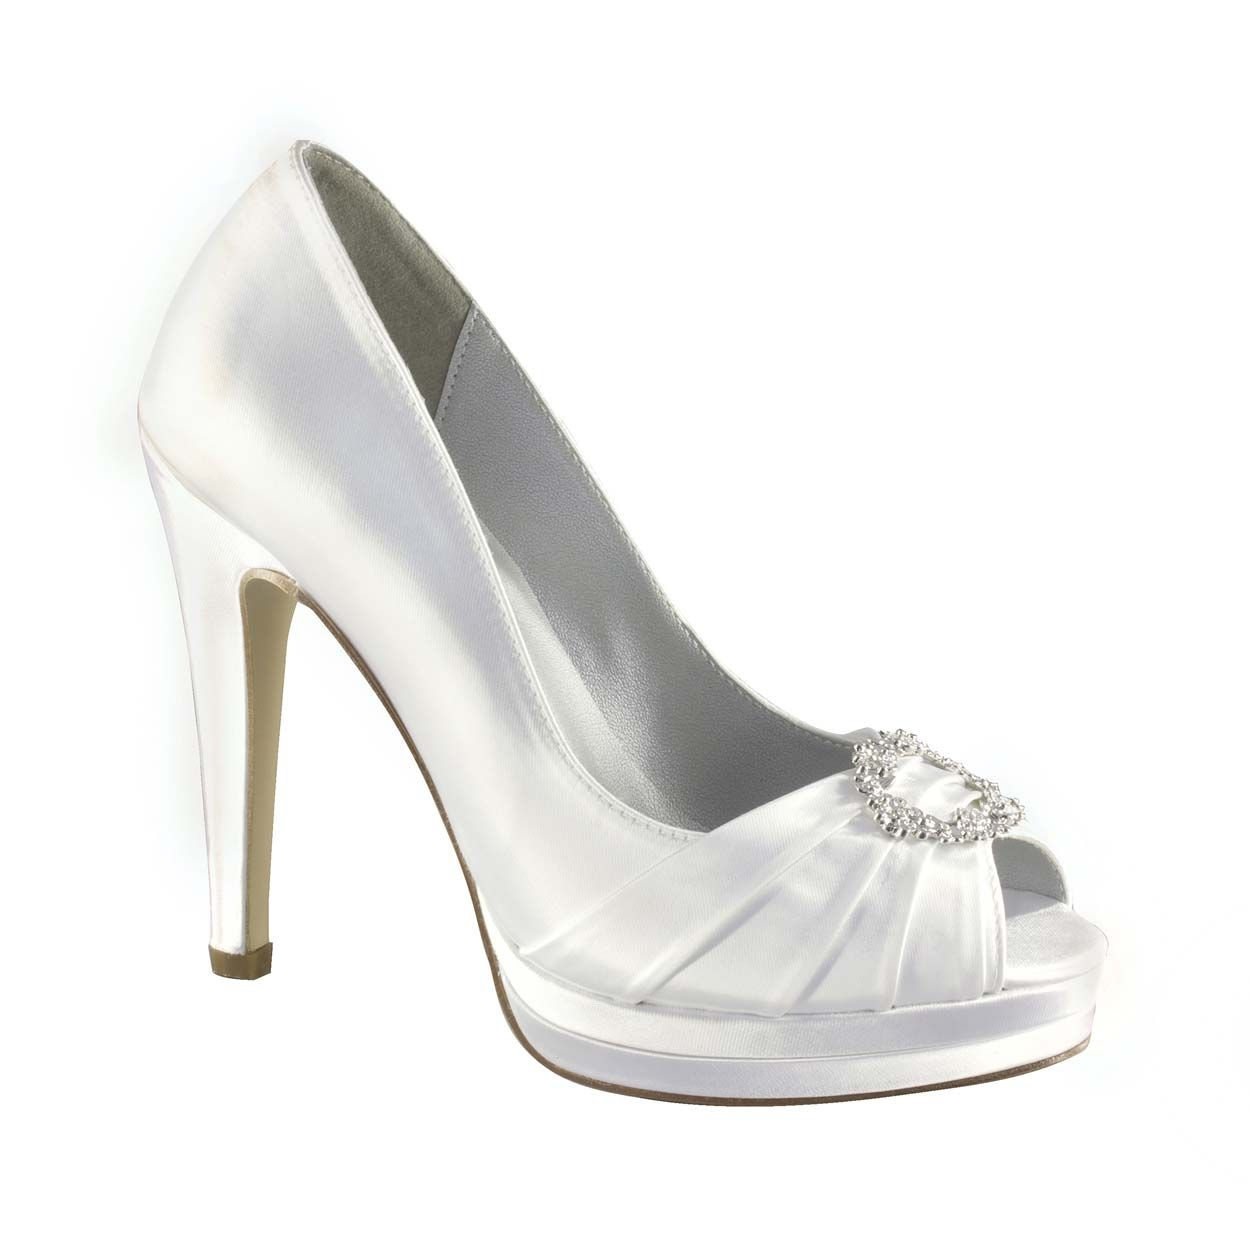 Pin By Lindsey Jarvis On Wedding Shoes Bridal Shoes Wedding Shoes Ivory Bridal Shoes